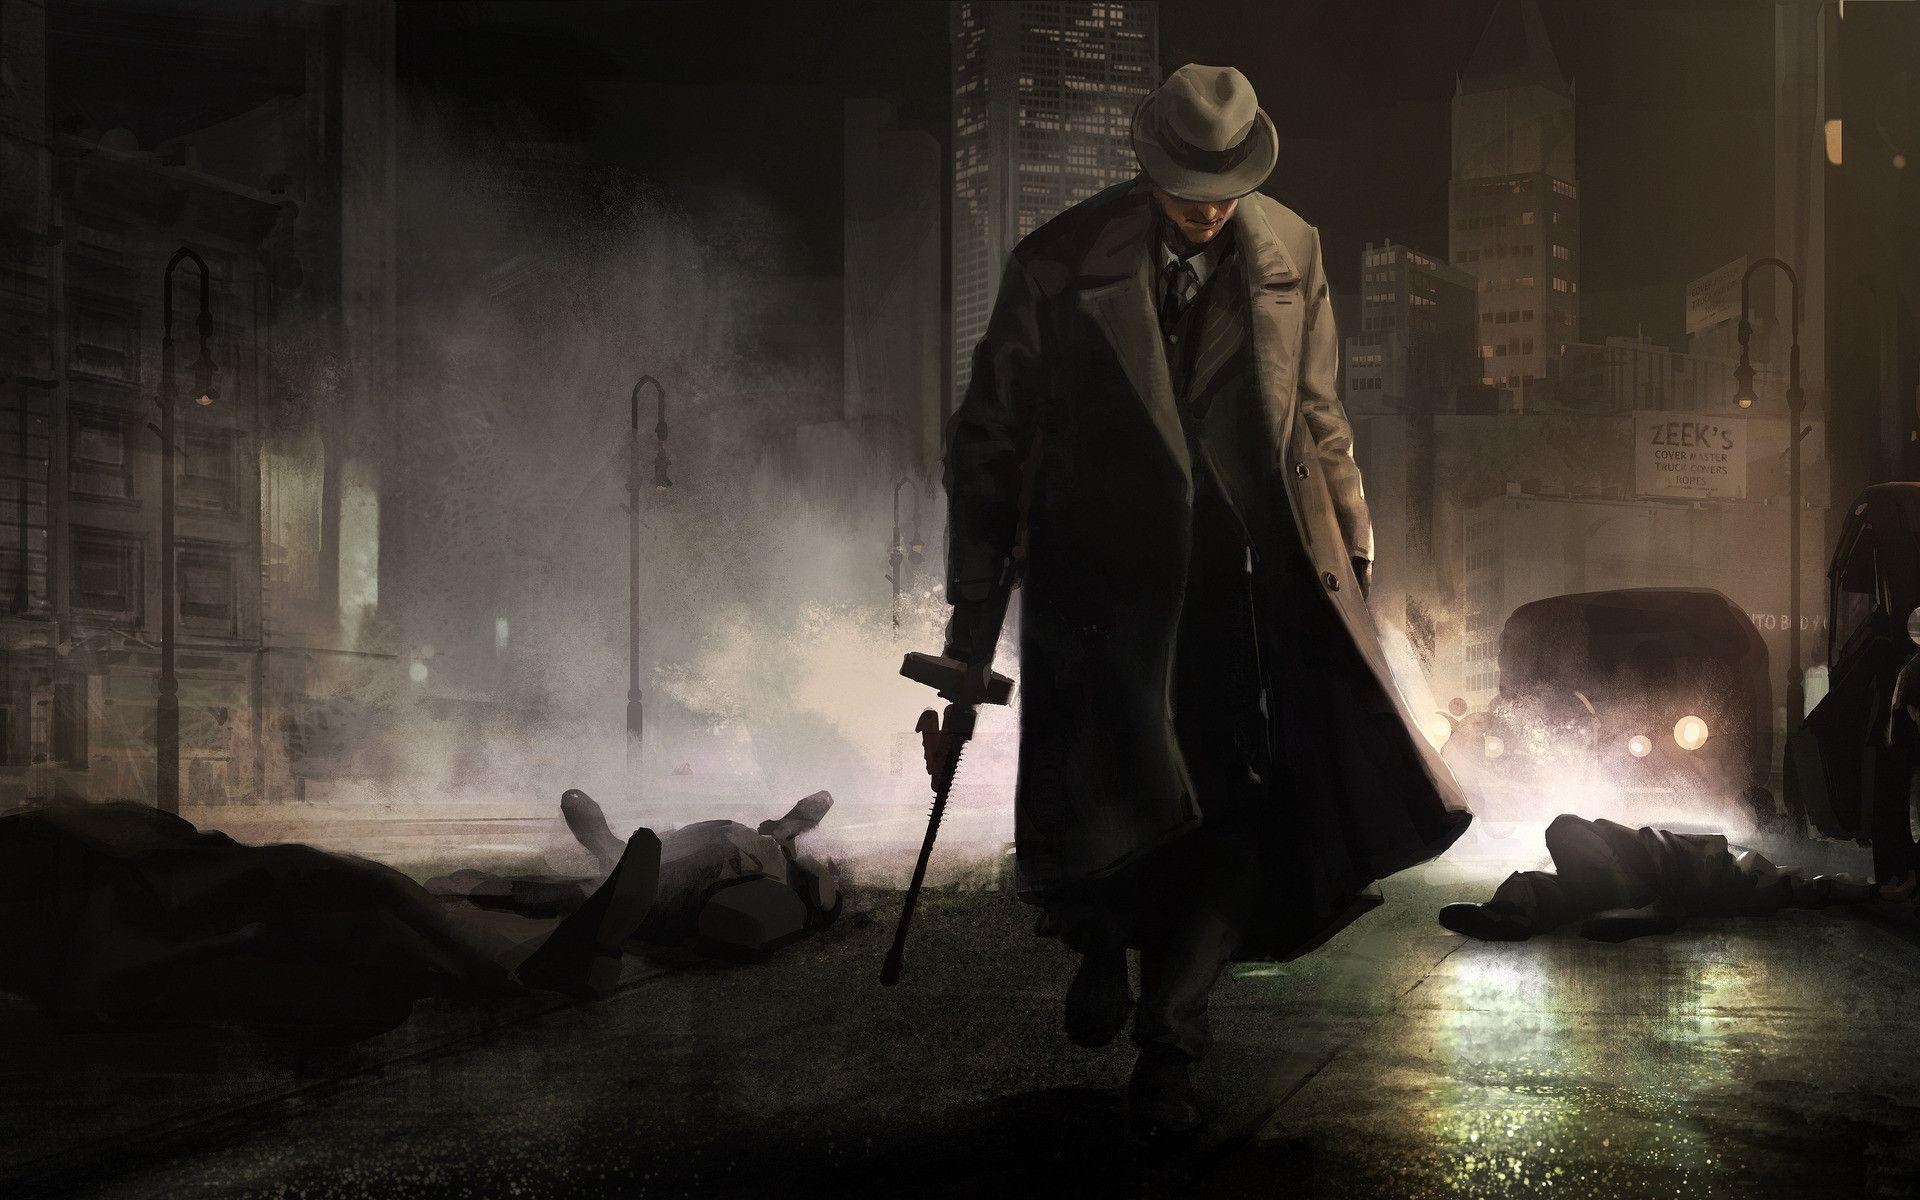 The Godfather Wallpapers - Full HD wallpaper search